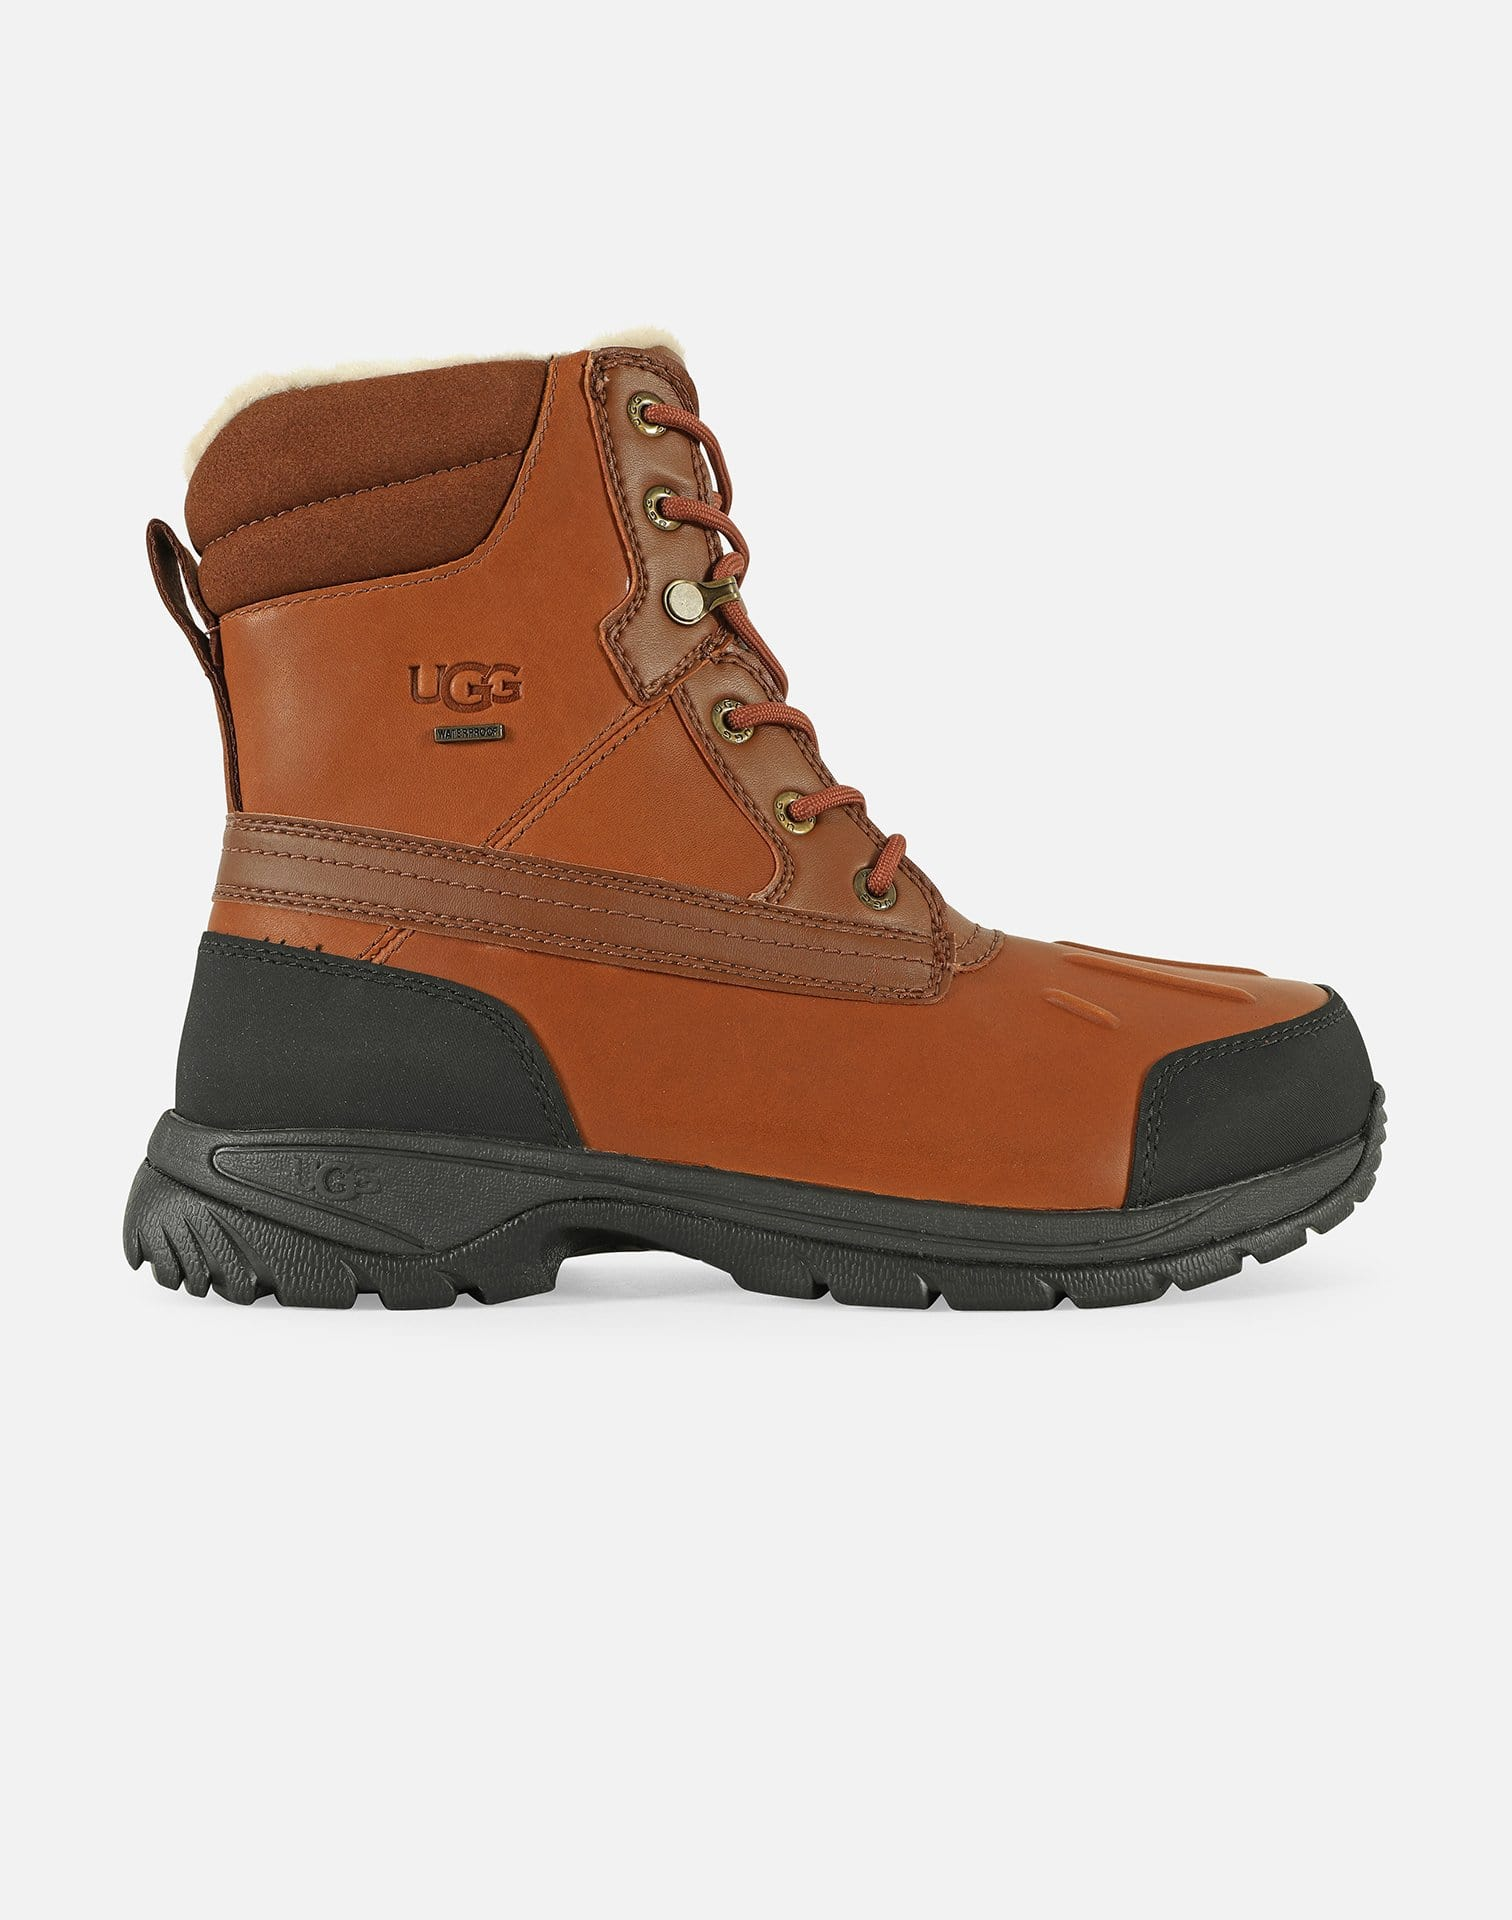 UGG Men's Felton Waterproof Boots